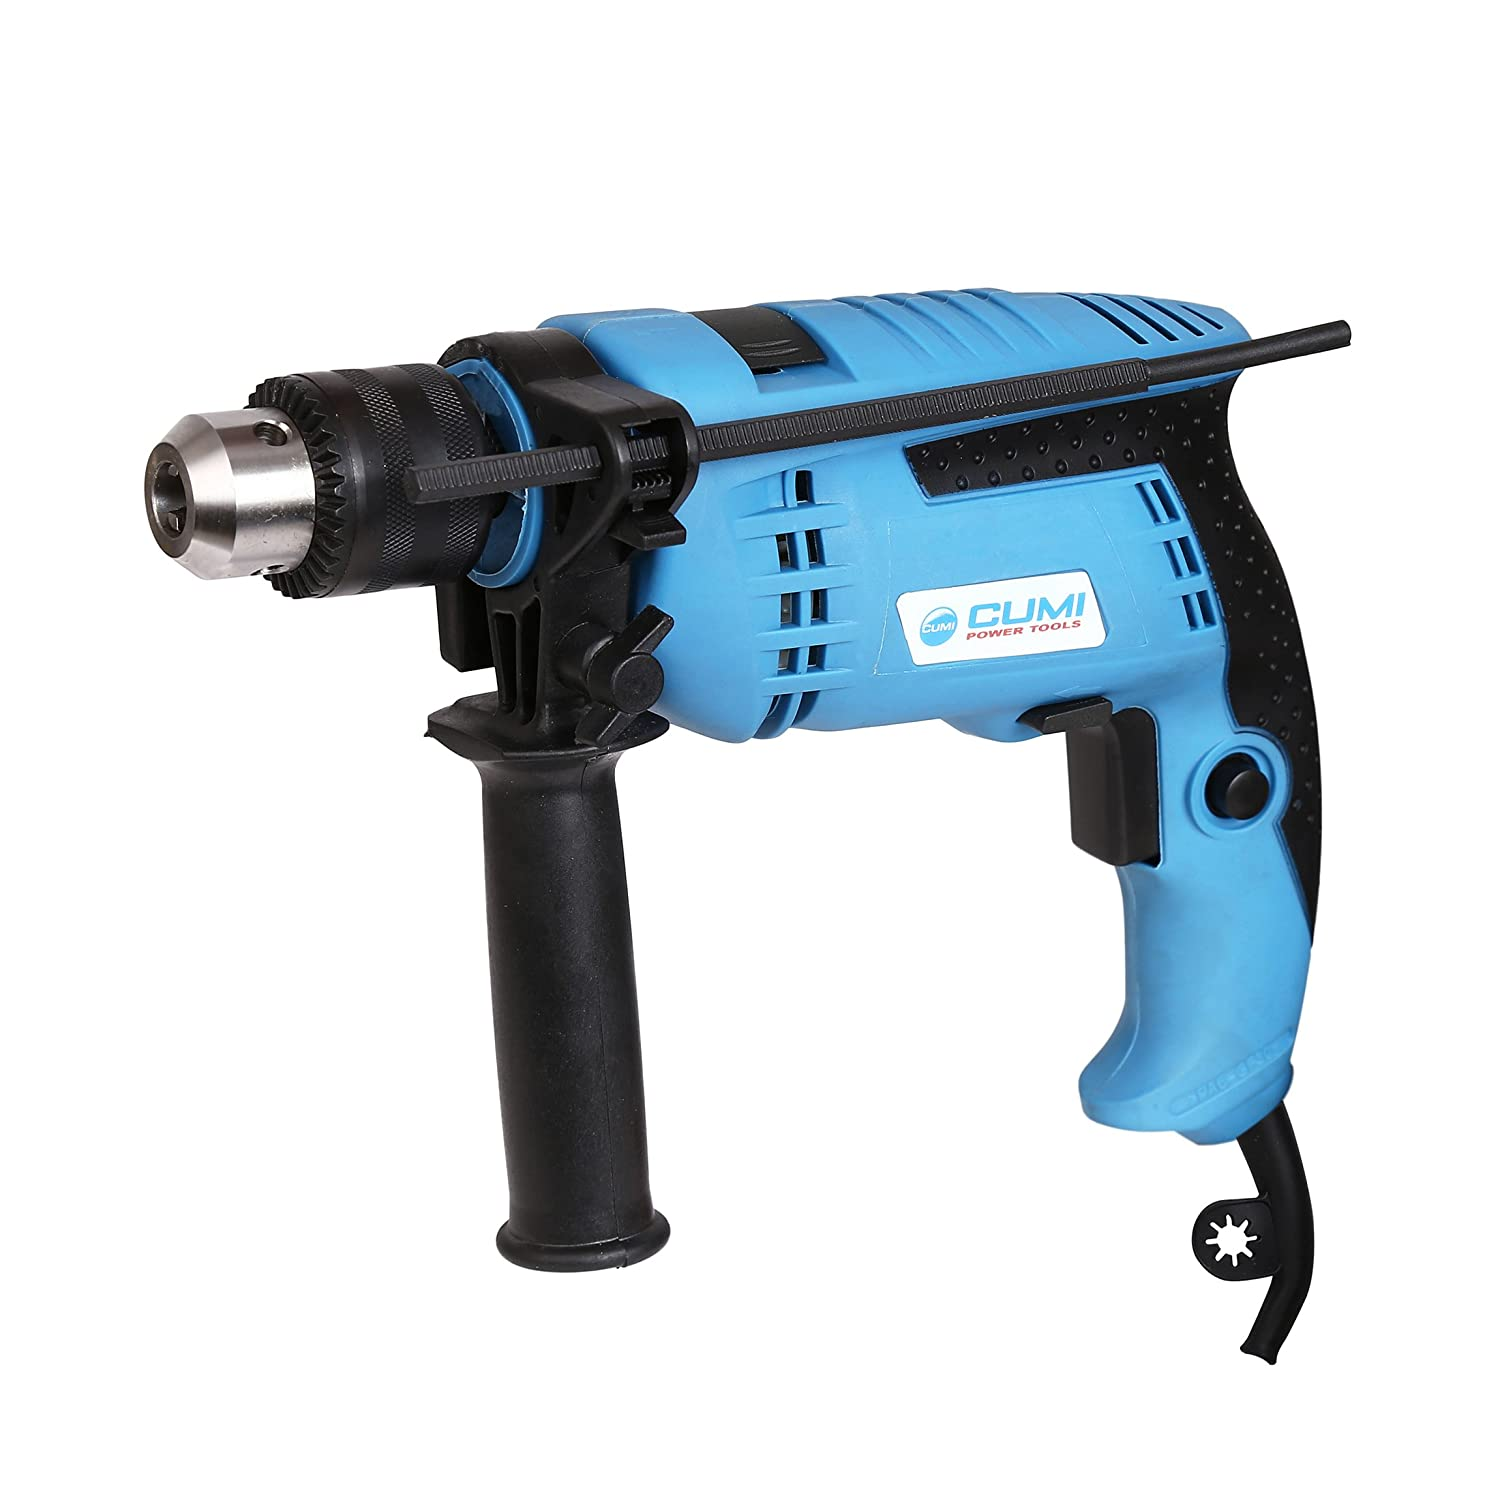 CUMI Impact Drill 13mm 600 Watts – CID 013 VR